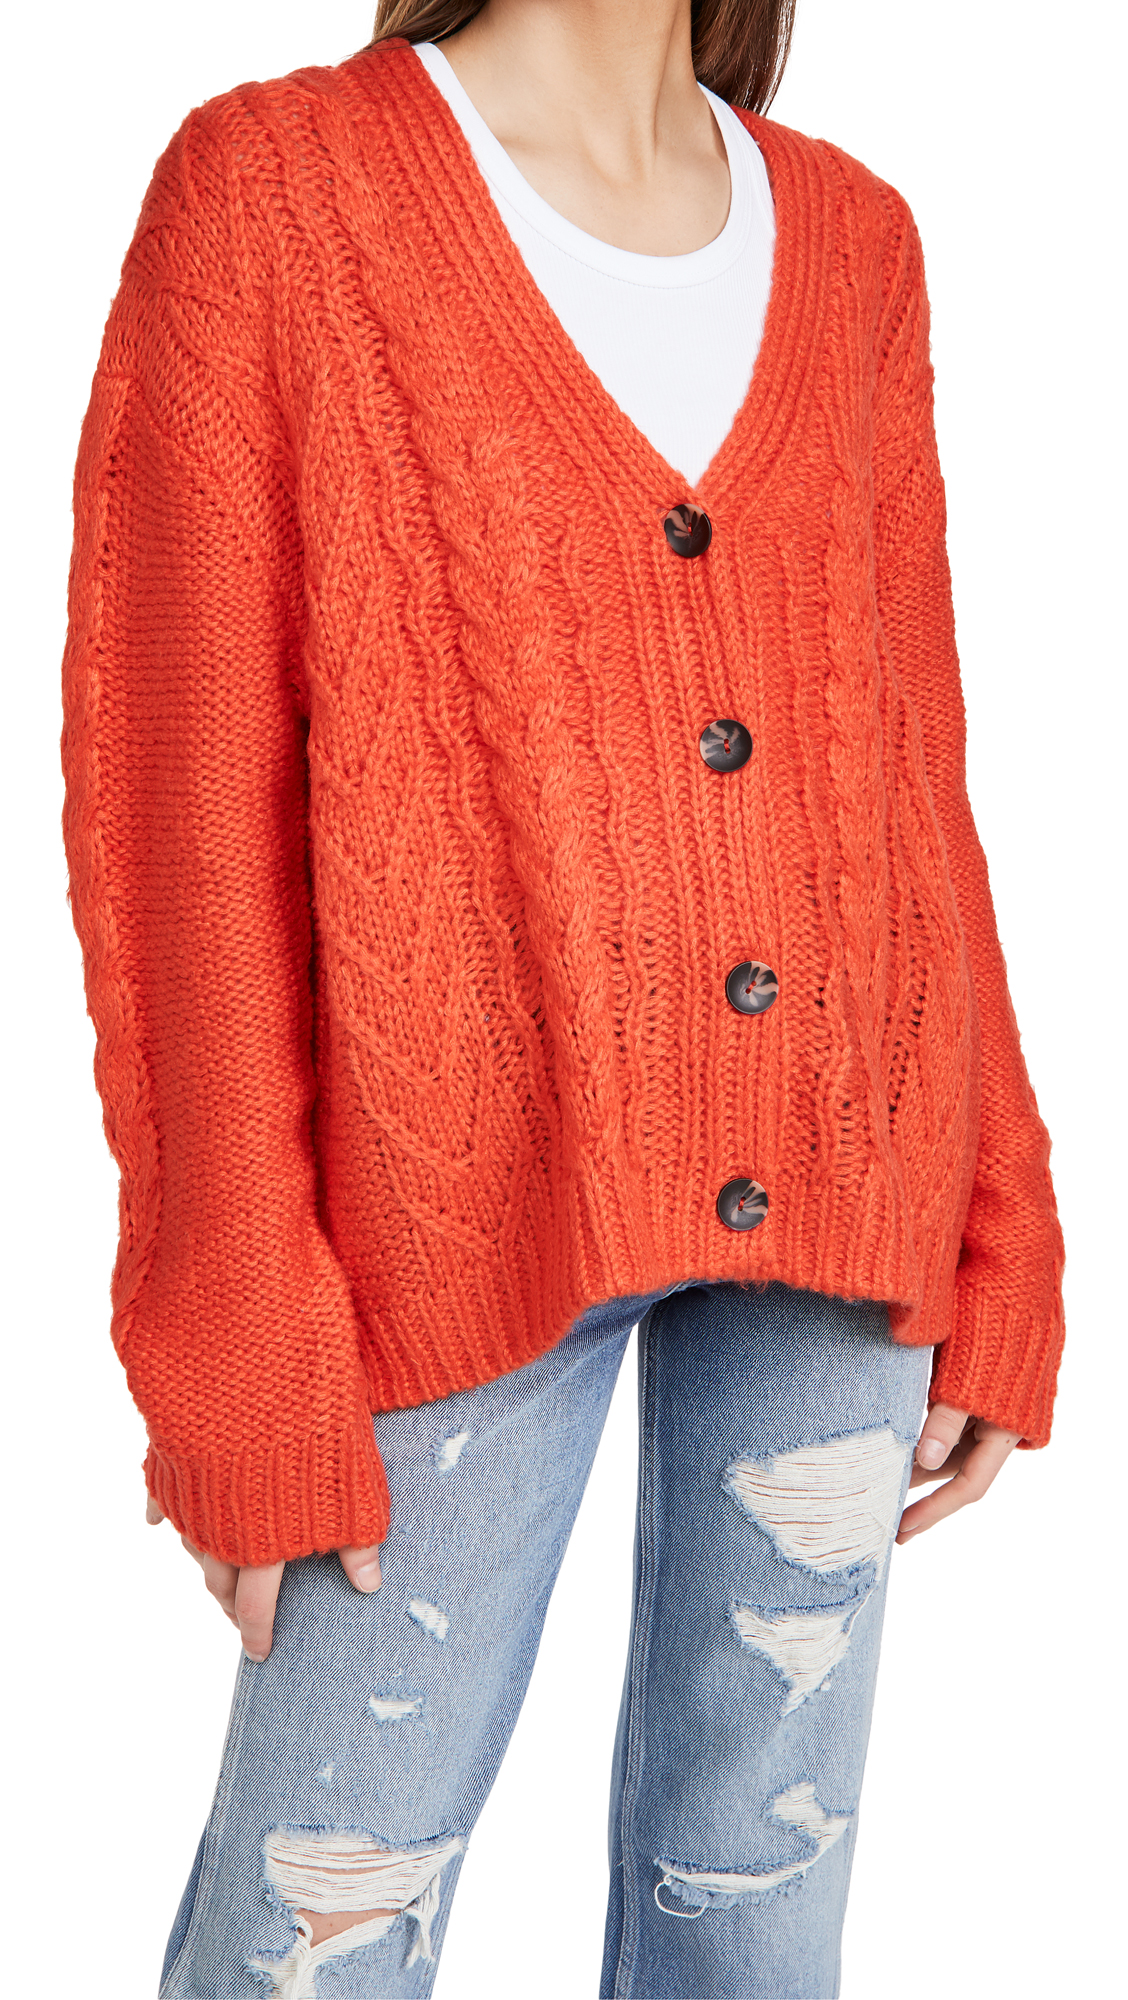 525 Mixed Cable Cardigan